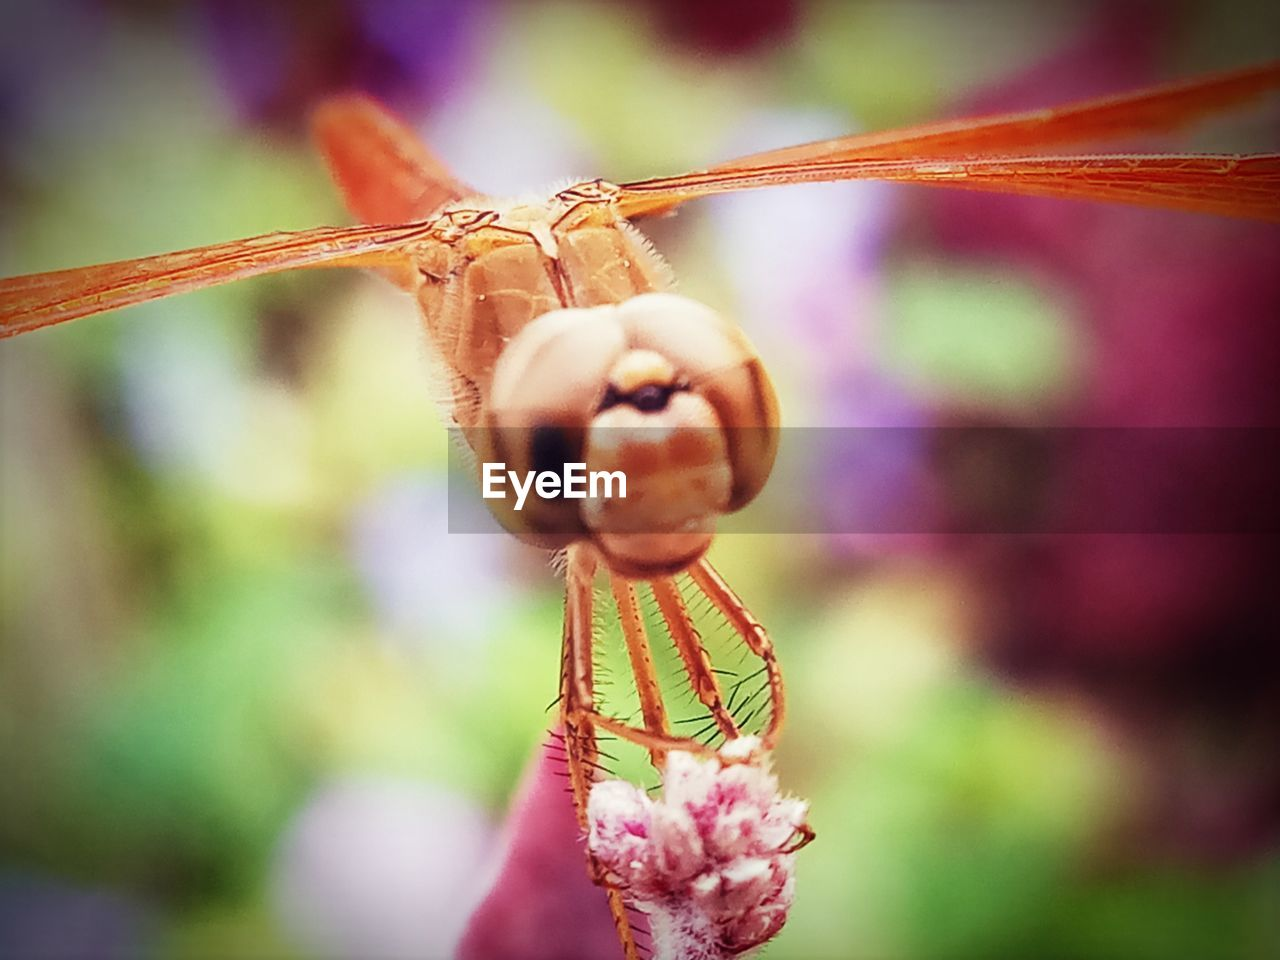 focus on foreground, outdoors, close-up, day, nature, plant, no people, growth, beauty in nature, animal themes, freshness